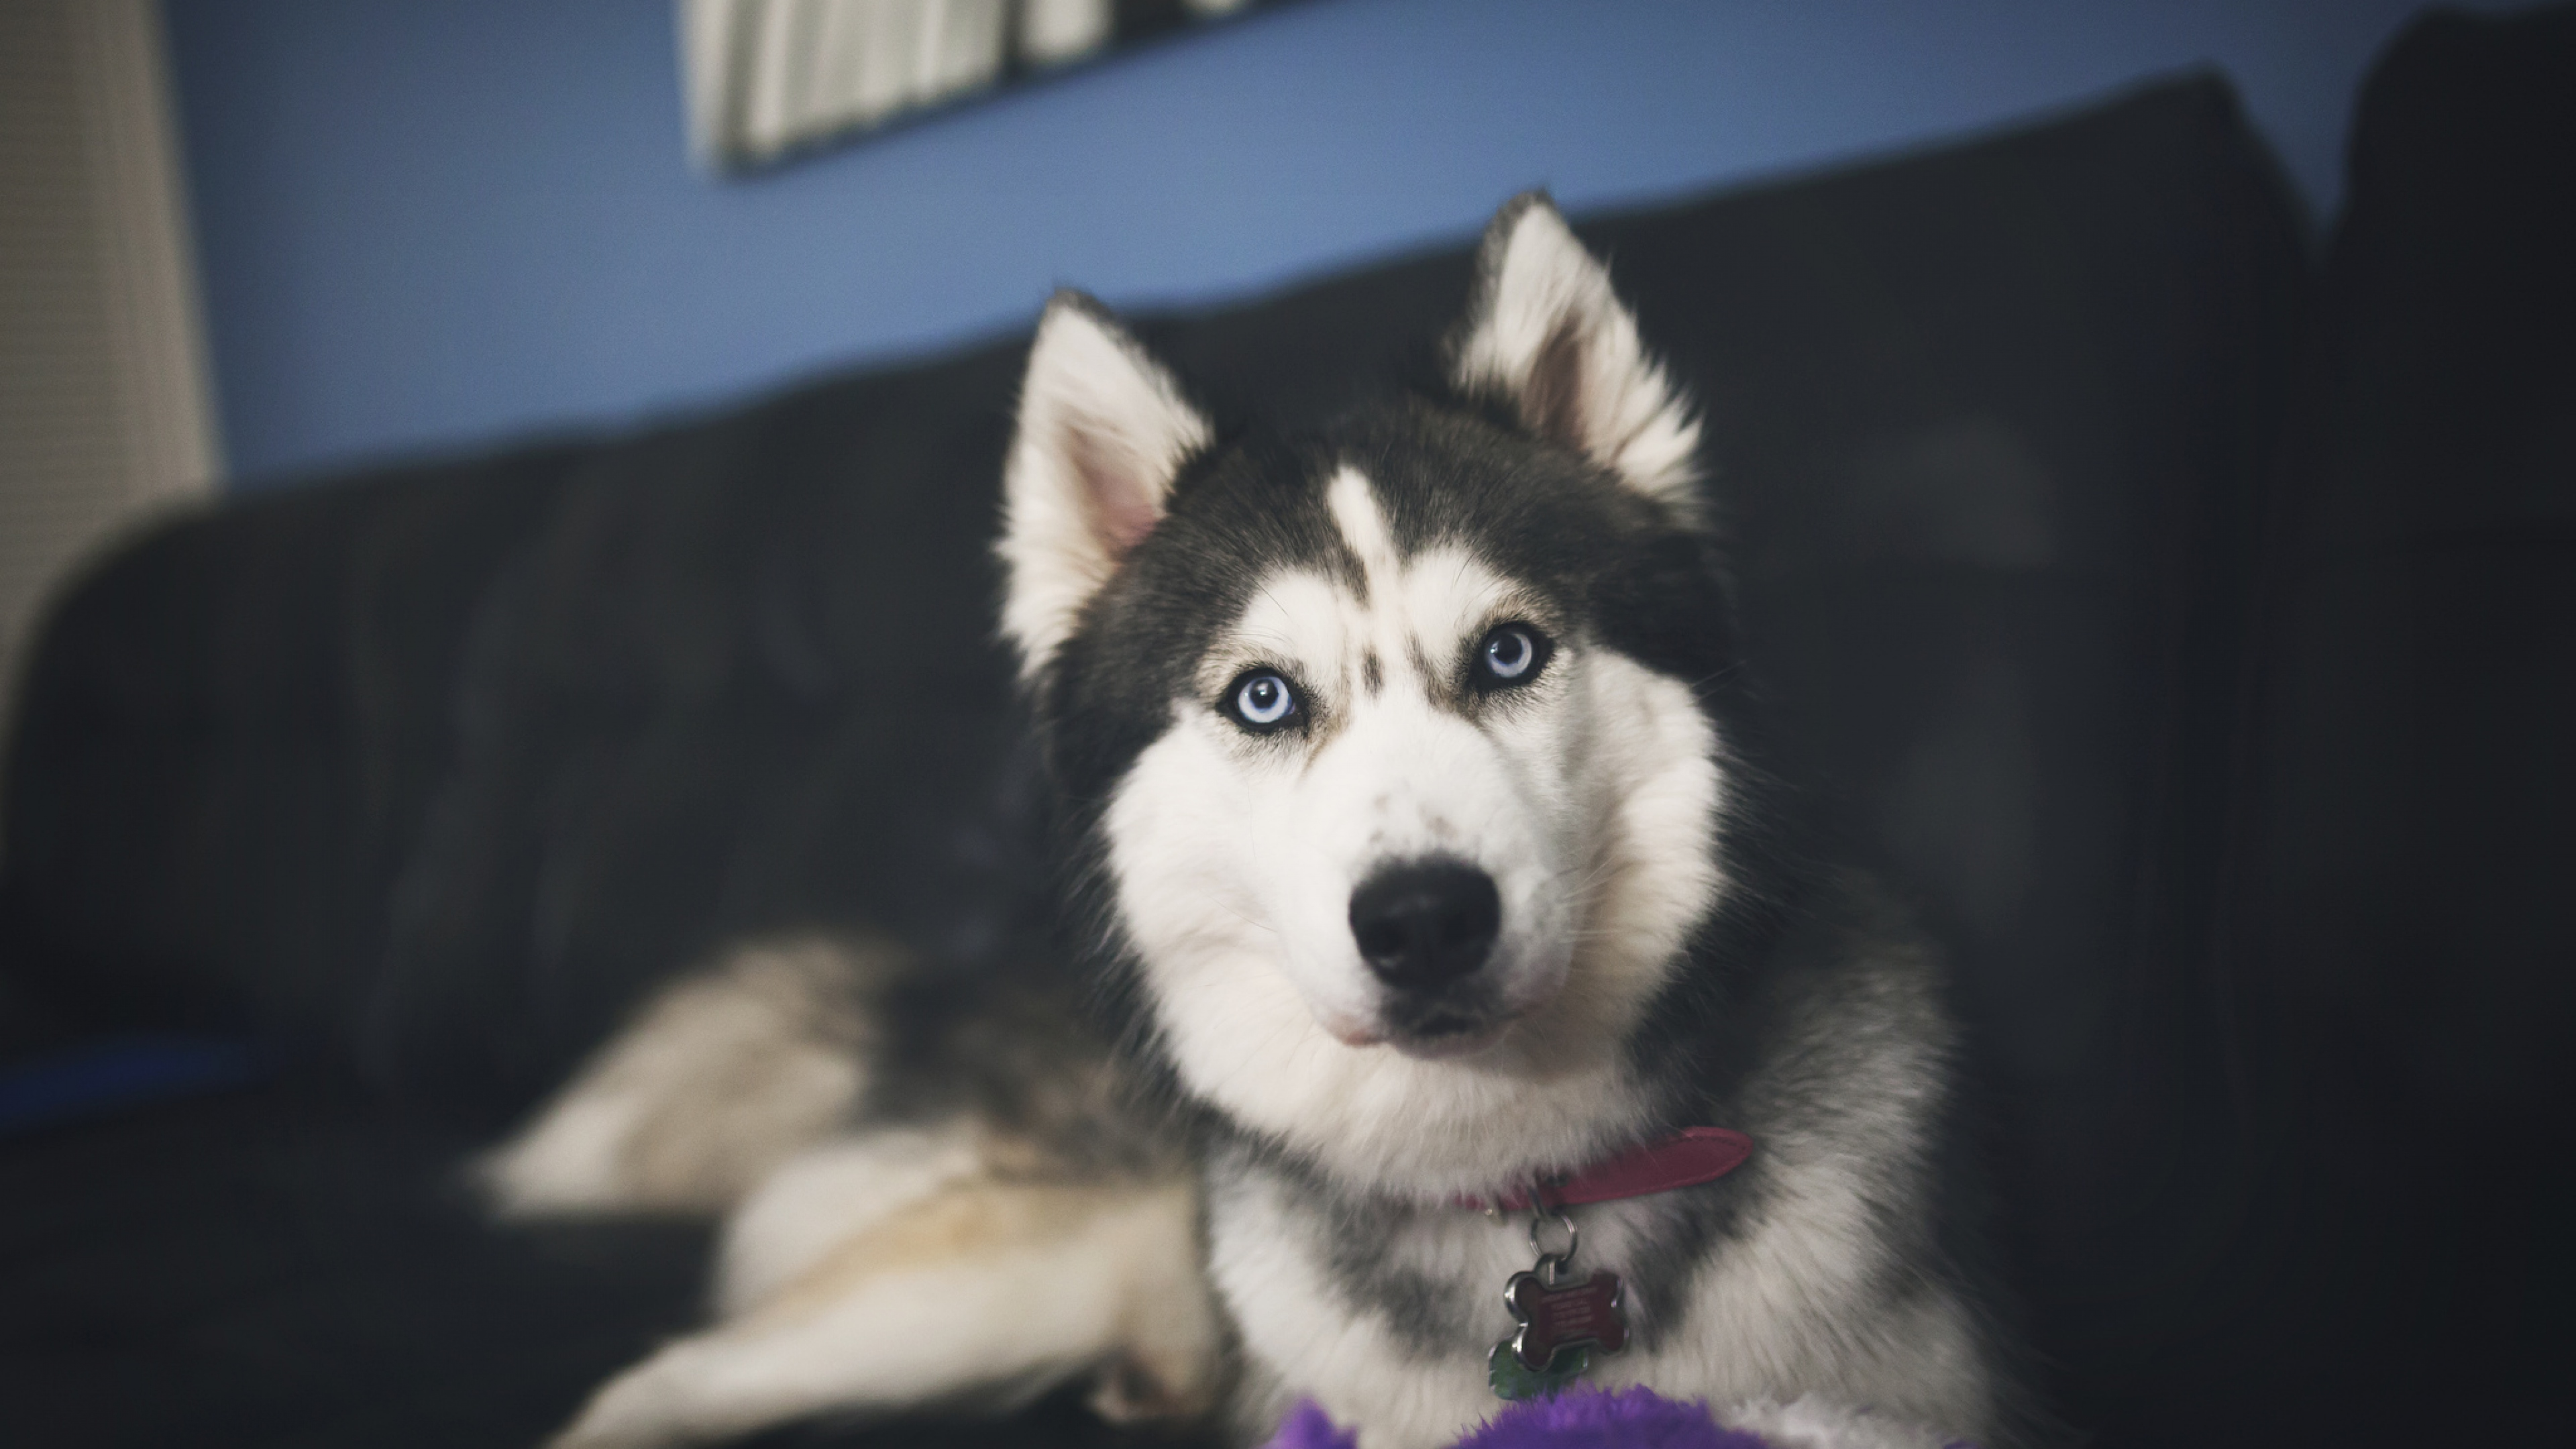 siberan husky 2 1542237647 - Siberan Husky 2 - siberan husky wallpapers, dog wallpapers, animals wallpapers